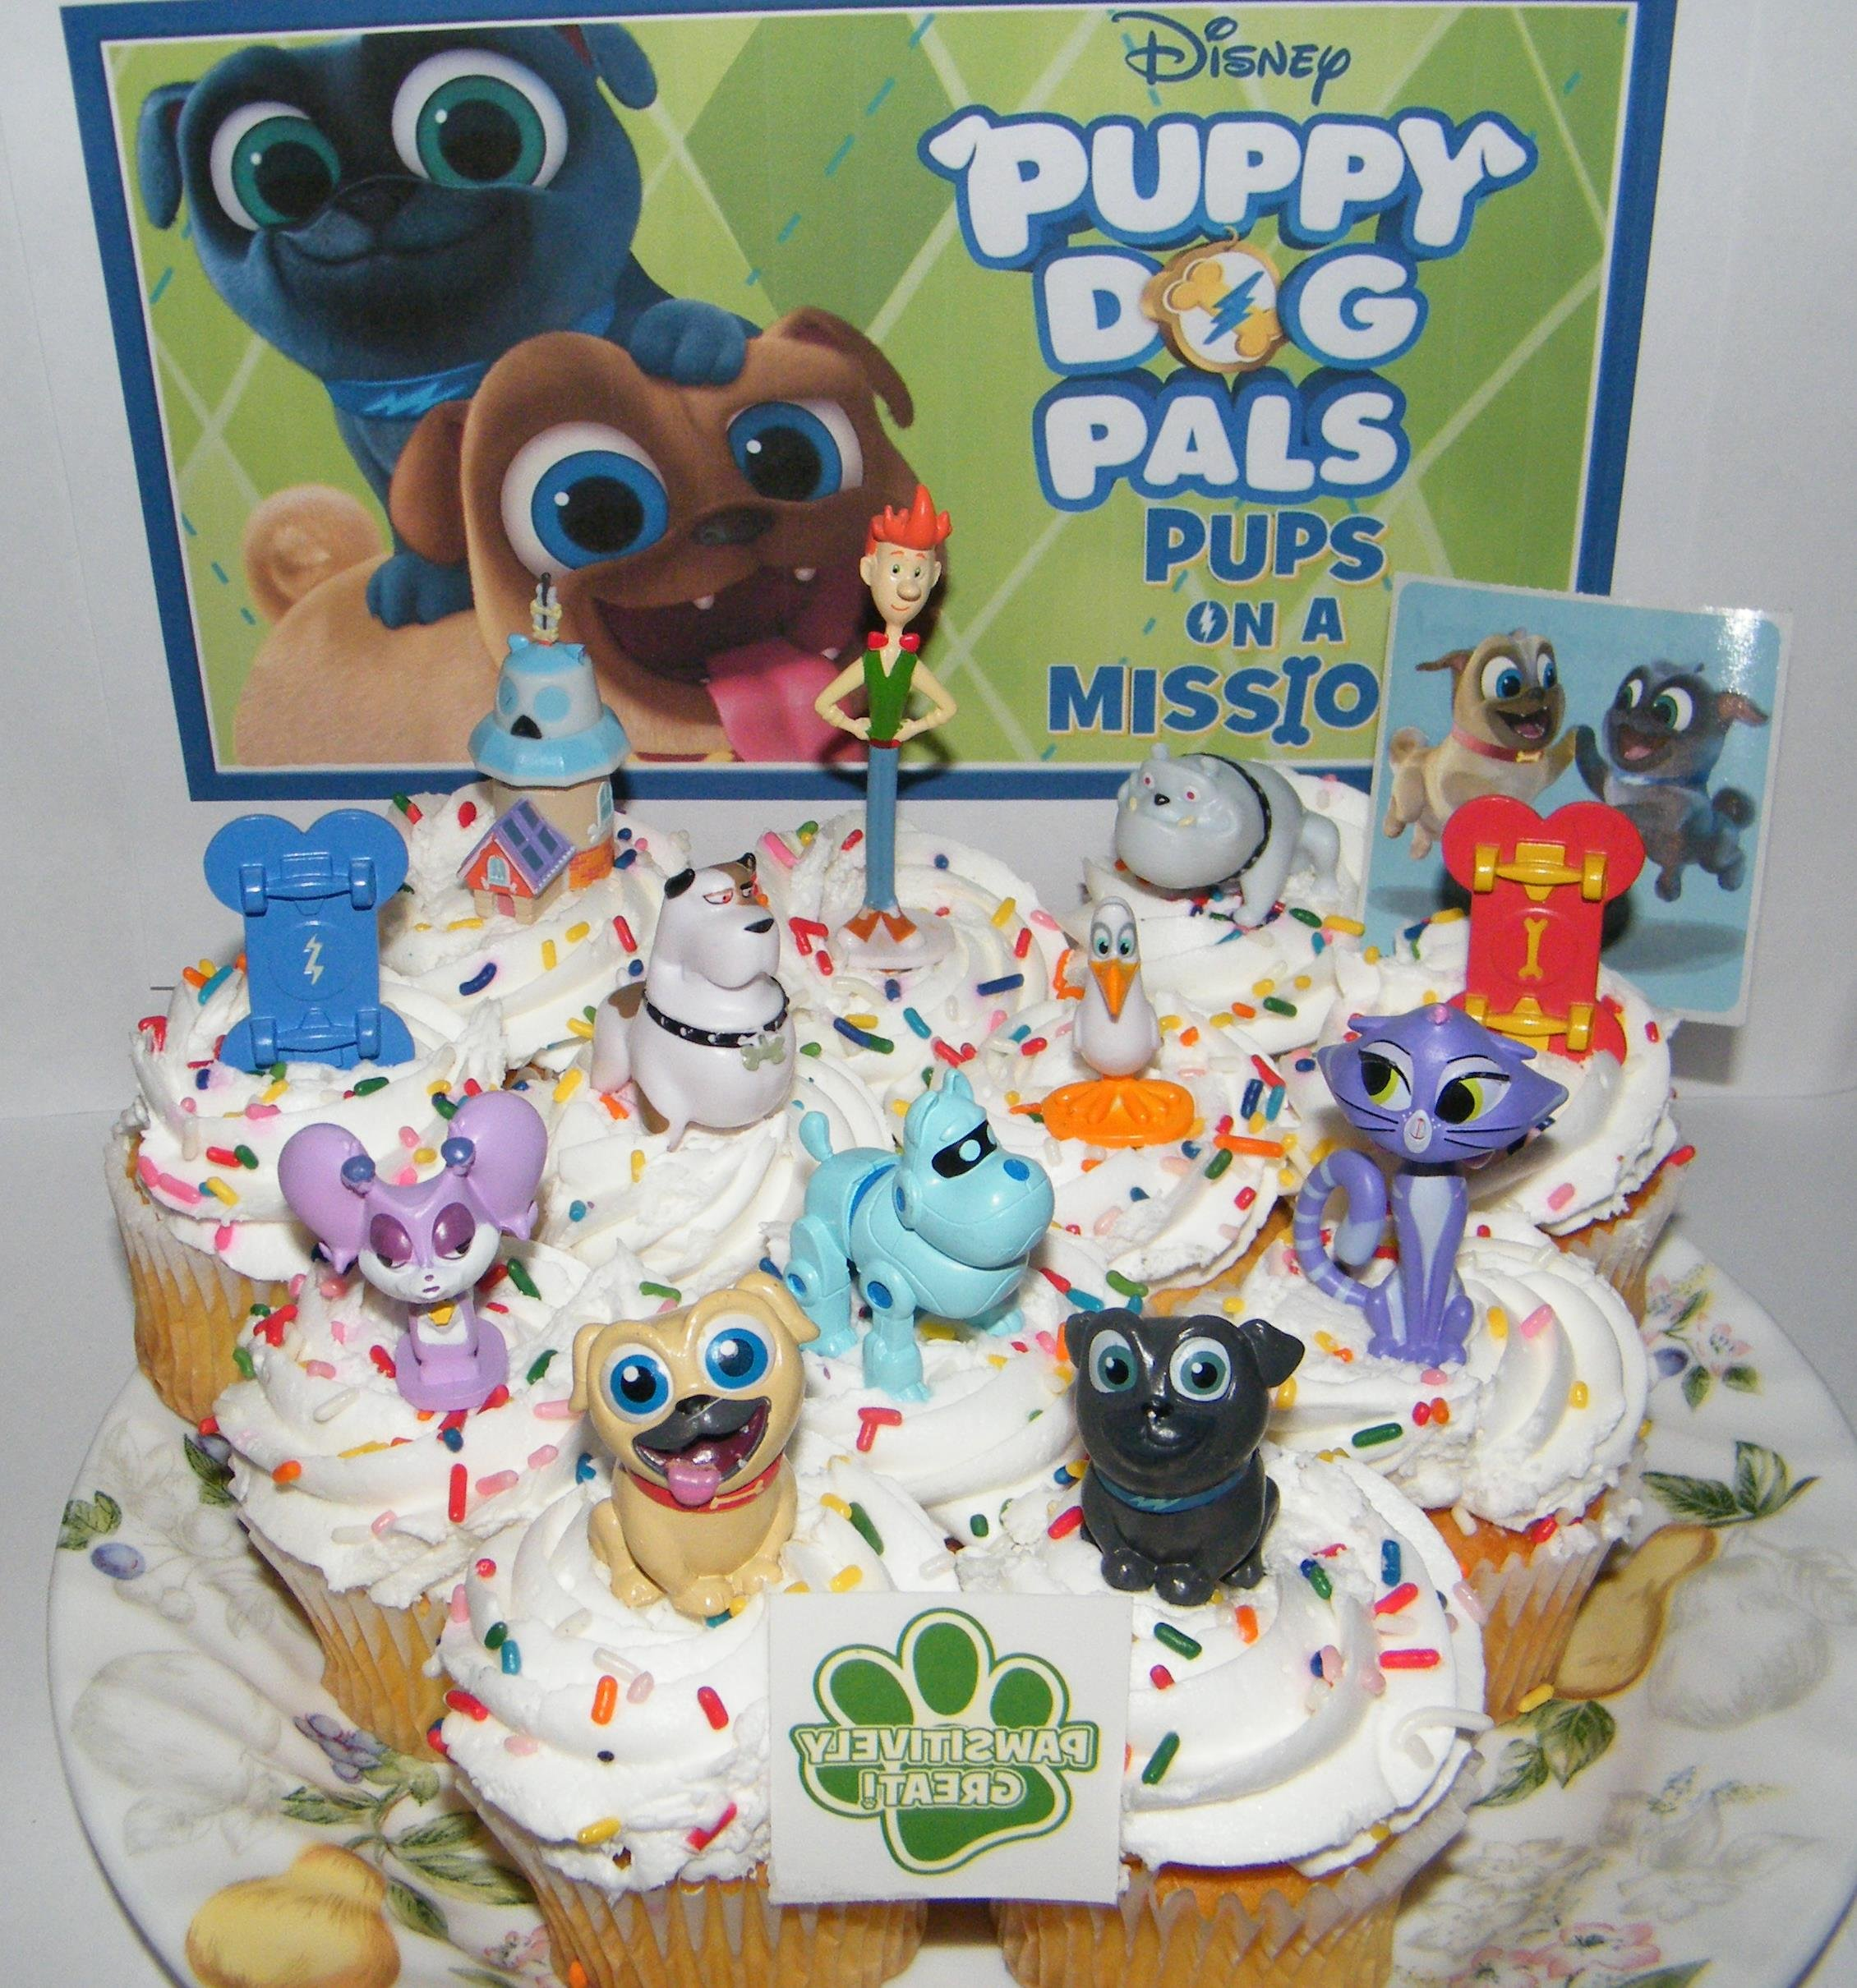 Disney Puppy Dog Pals Deluxe Cake Toppers Cupcake Decorations Set of 14 with Figures, 2 Skateboards, PAW Tattoo and Pals Sticker Featuring ARF, Bingo, Rolly and Friends. by Party Supplies